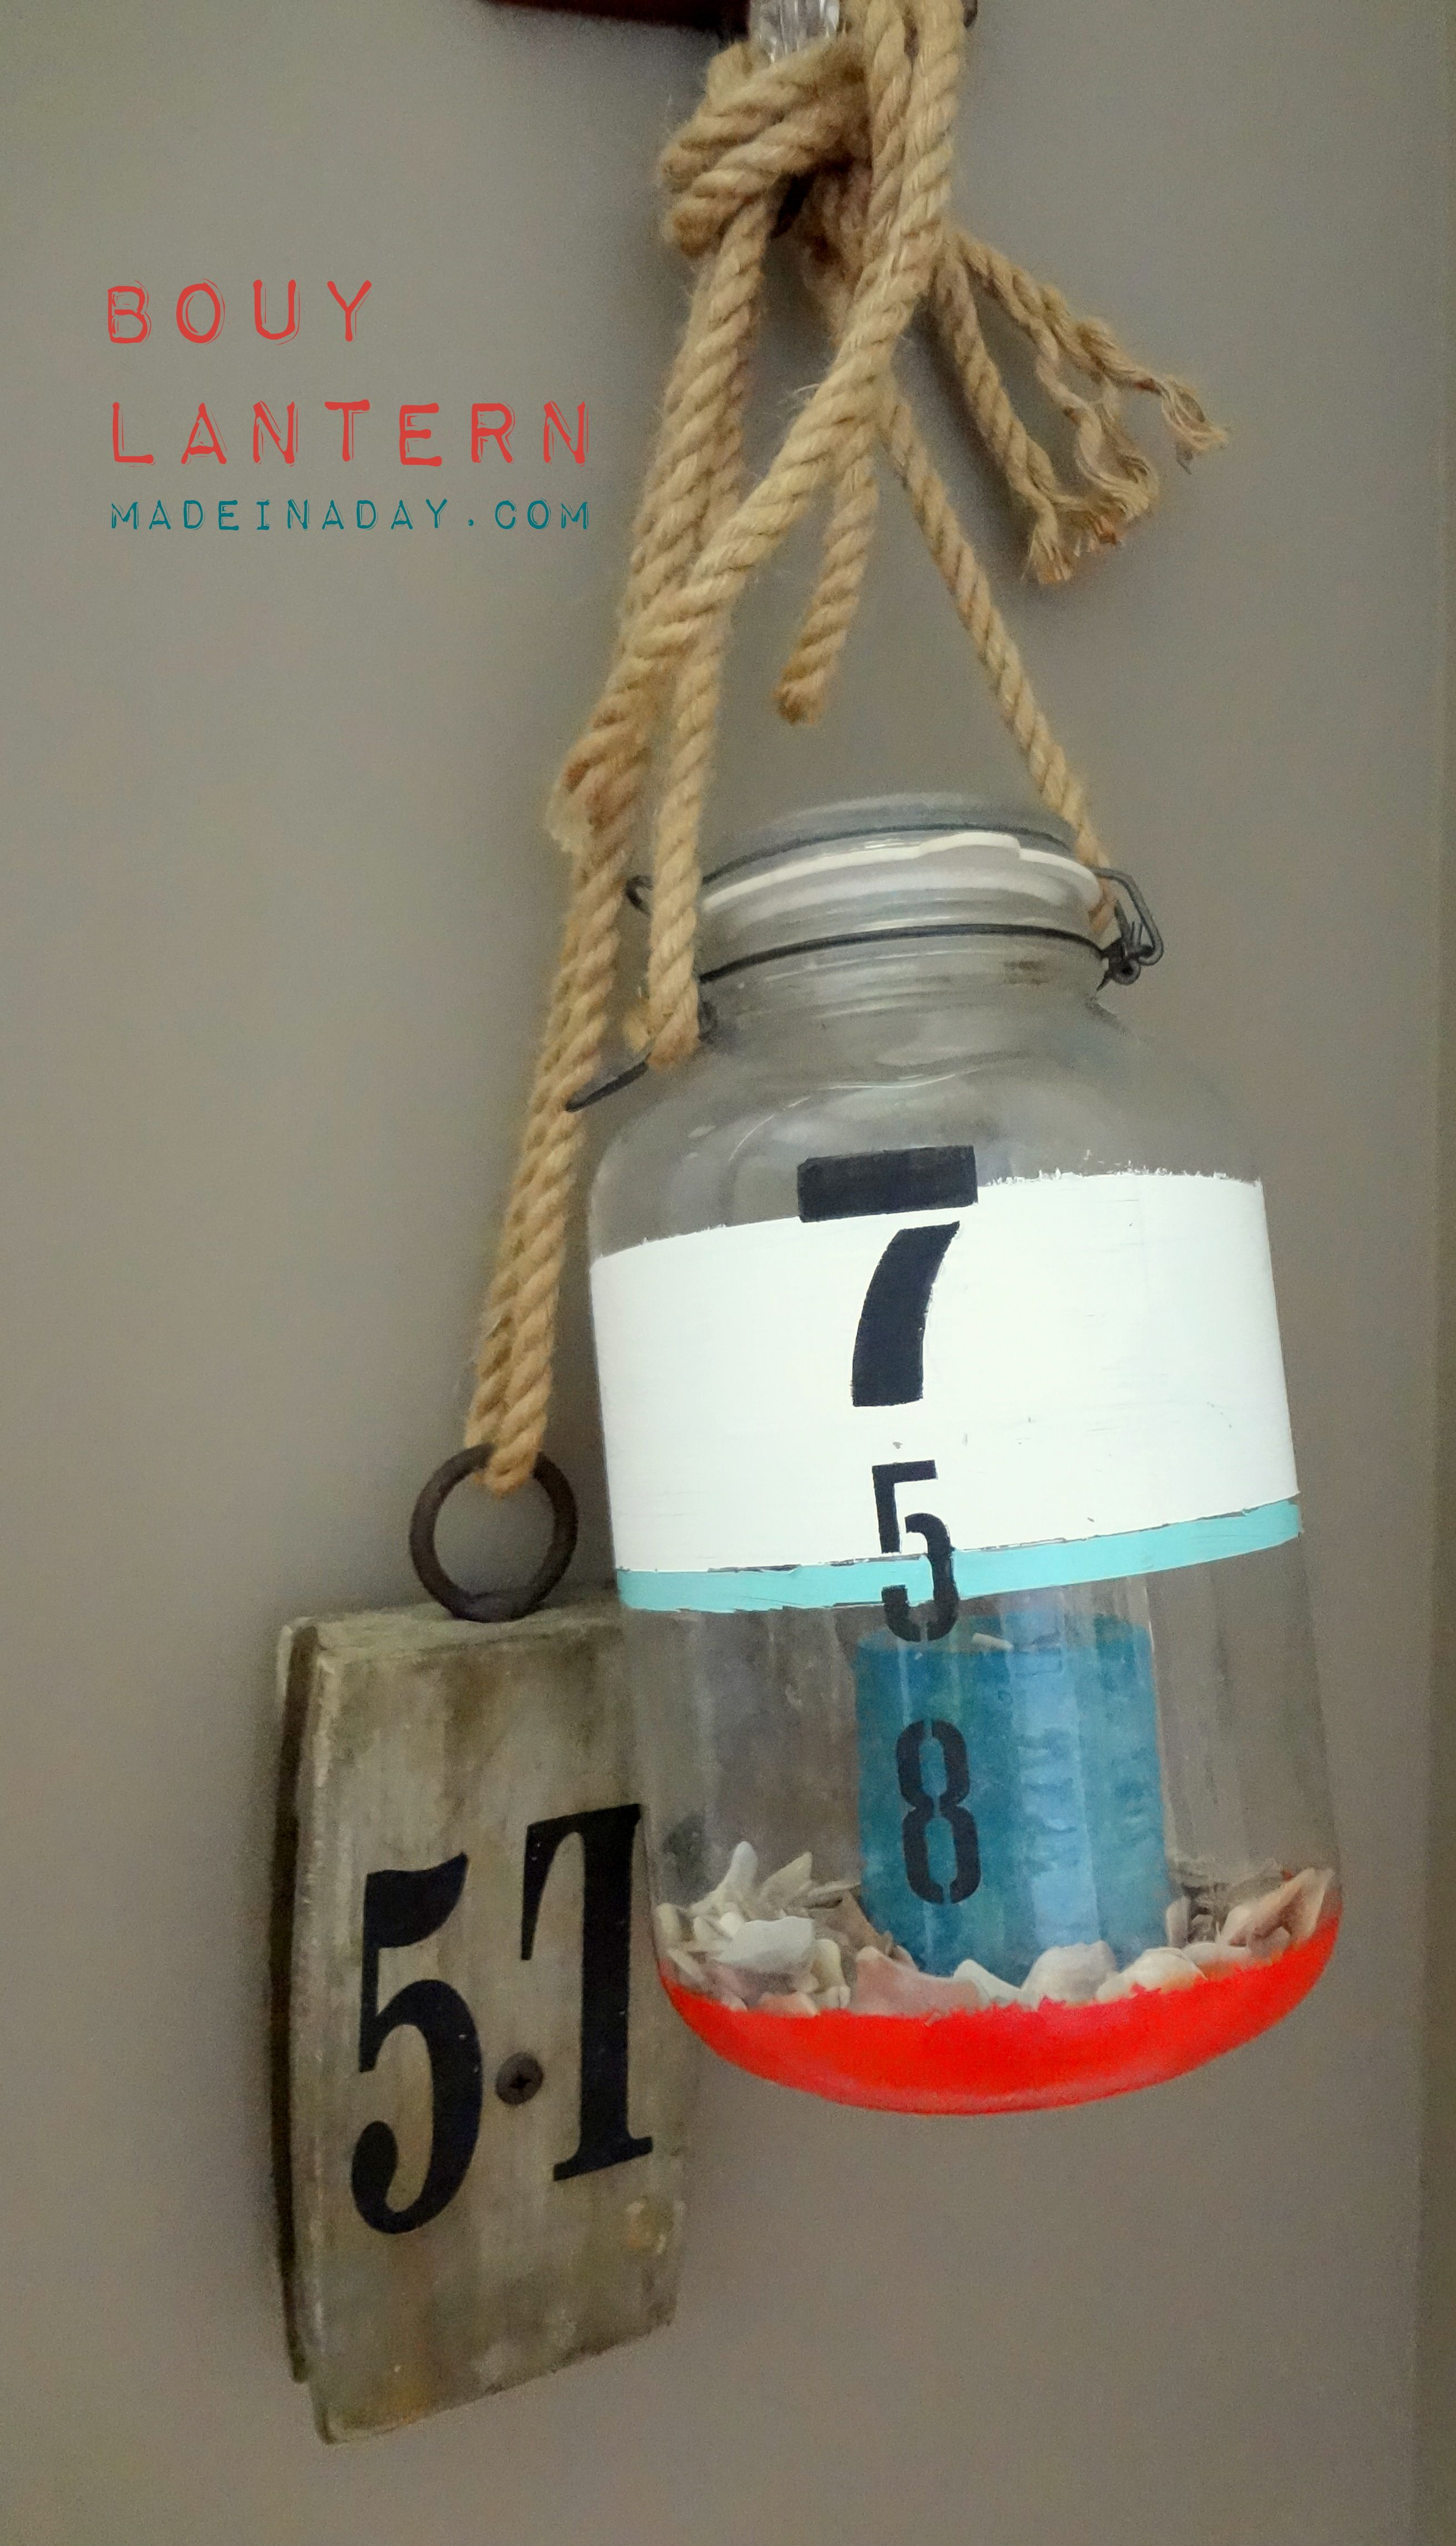 DIY tutorial, DIY Bouy Lantern, easy craft, using craft products from Blitsy.com, Nautical Bouy decor, easy crafts, design DIY, Marine bouy Sea decor, beach